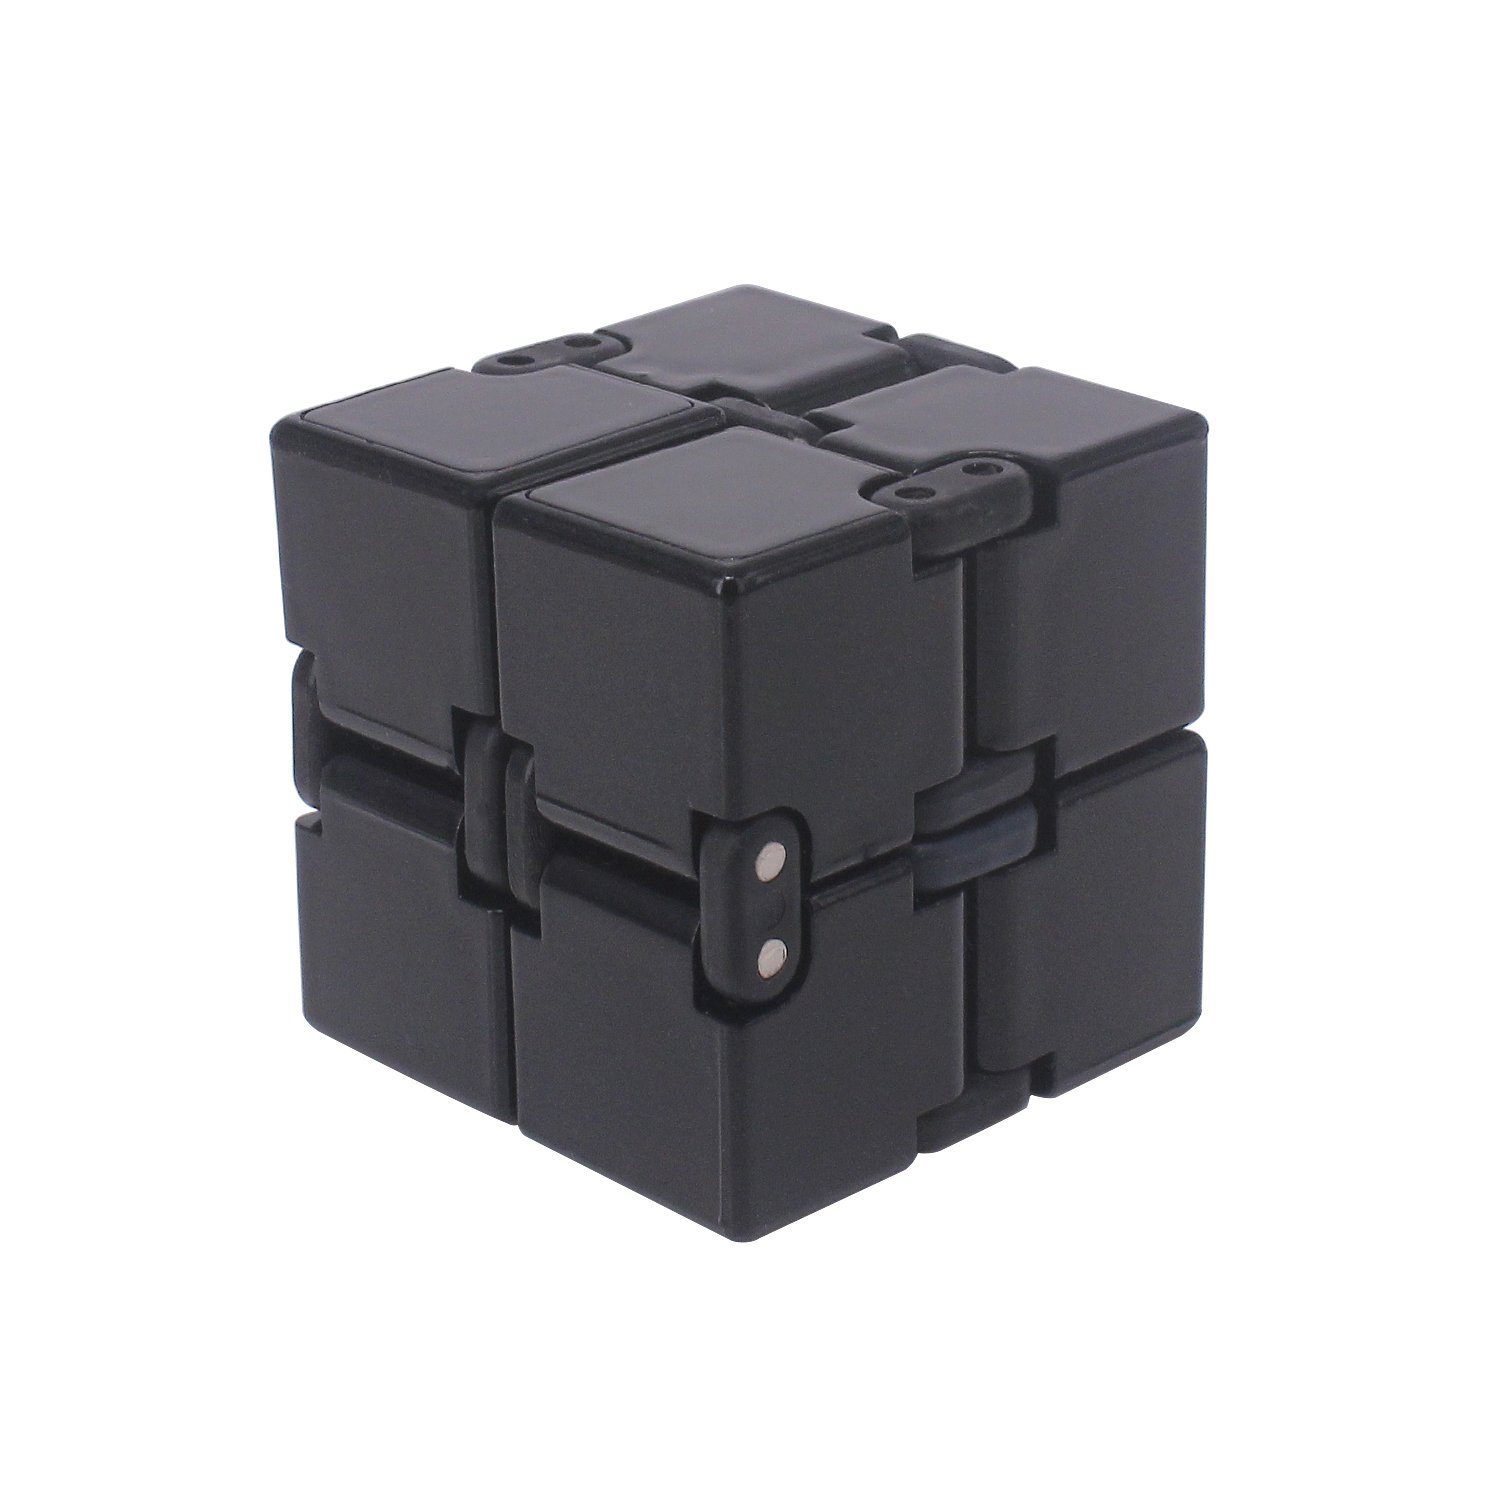 infinity cube amazon. amazon.com: yeebline infinity cube toy stress reducer for adults and kids to relieve anxiety stress, mini creative folding fidget puzzles amazon i